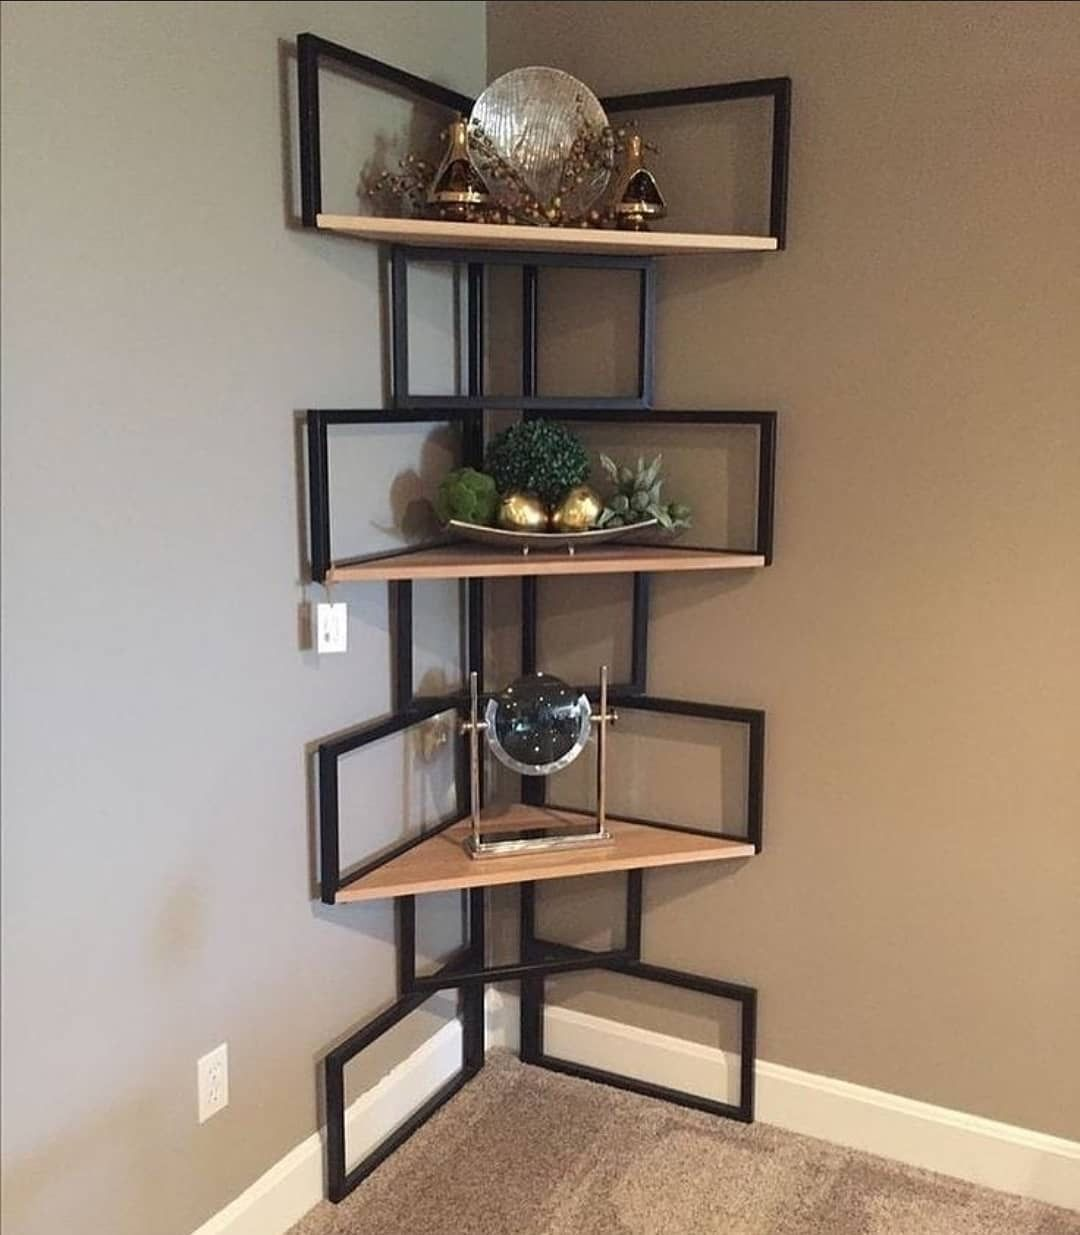 16 Creative Home Decors To Bring A Different Feel To Your Home In 2020 Home Decor Shelves Welded Furniture House Interior Decor